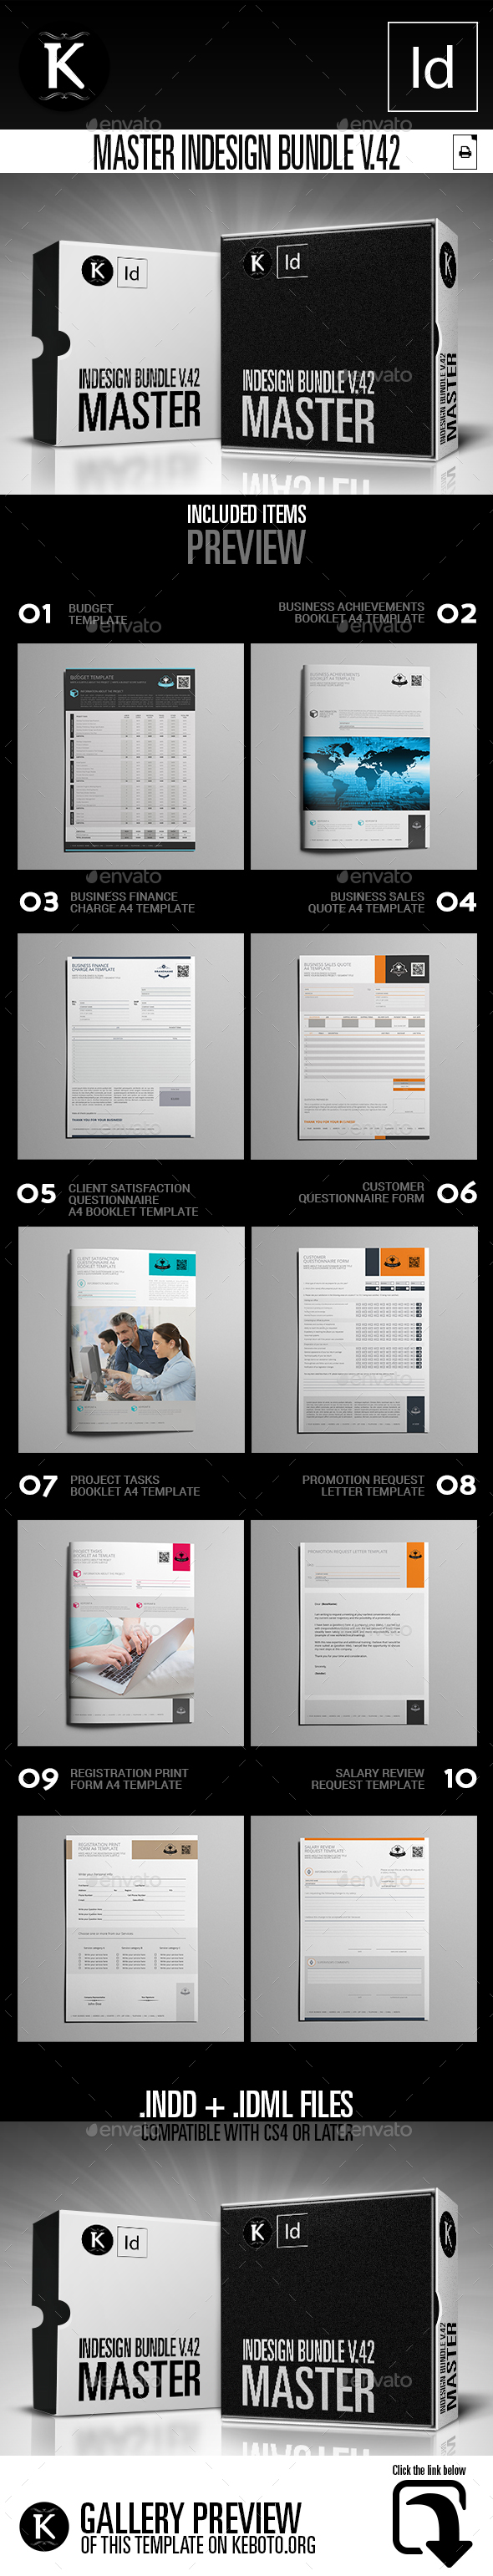 GraphicRiver Master inDesign Bundle v.42 21079561